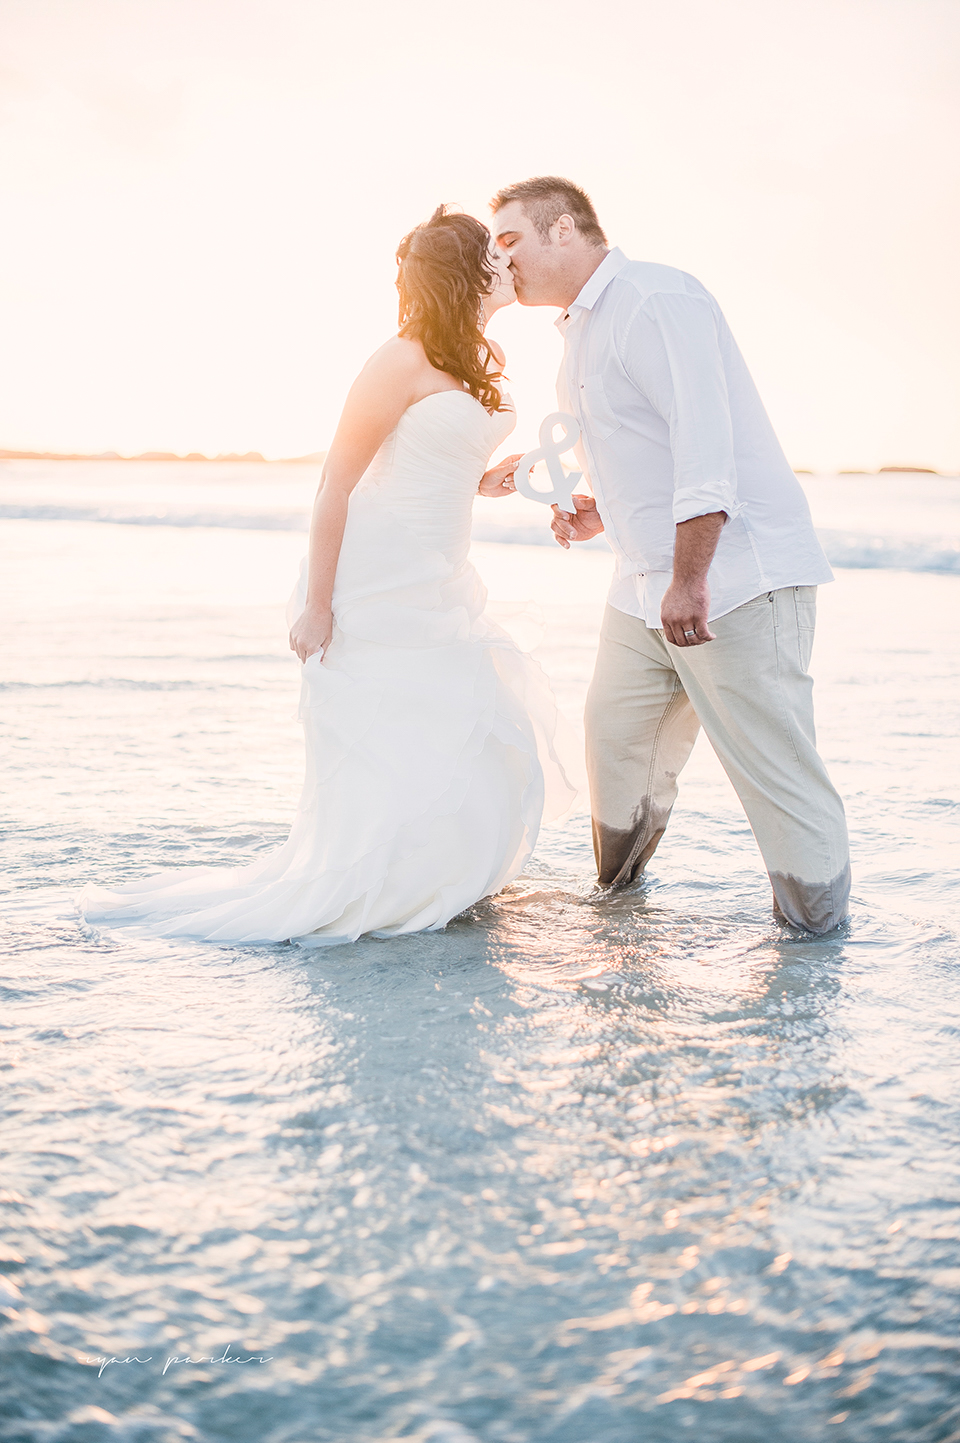 RYAN PARKER_WEDDING PHOTOGRAPHER_FINE ART_WESTERN_CAPE PATERNOSTER_M&F-0902.jpg